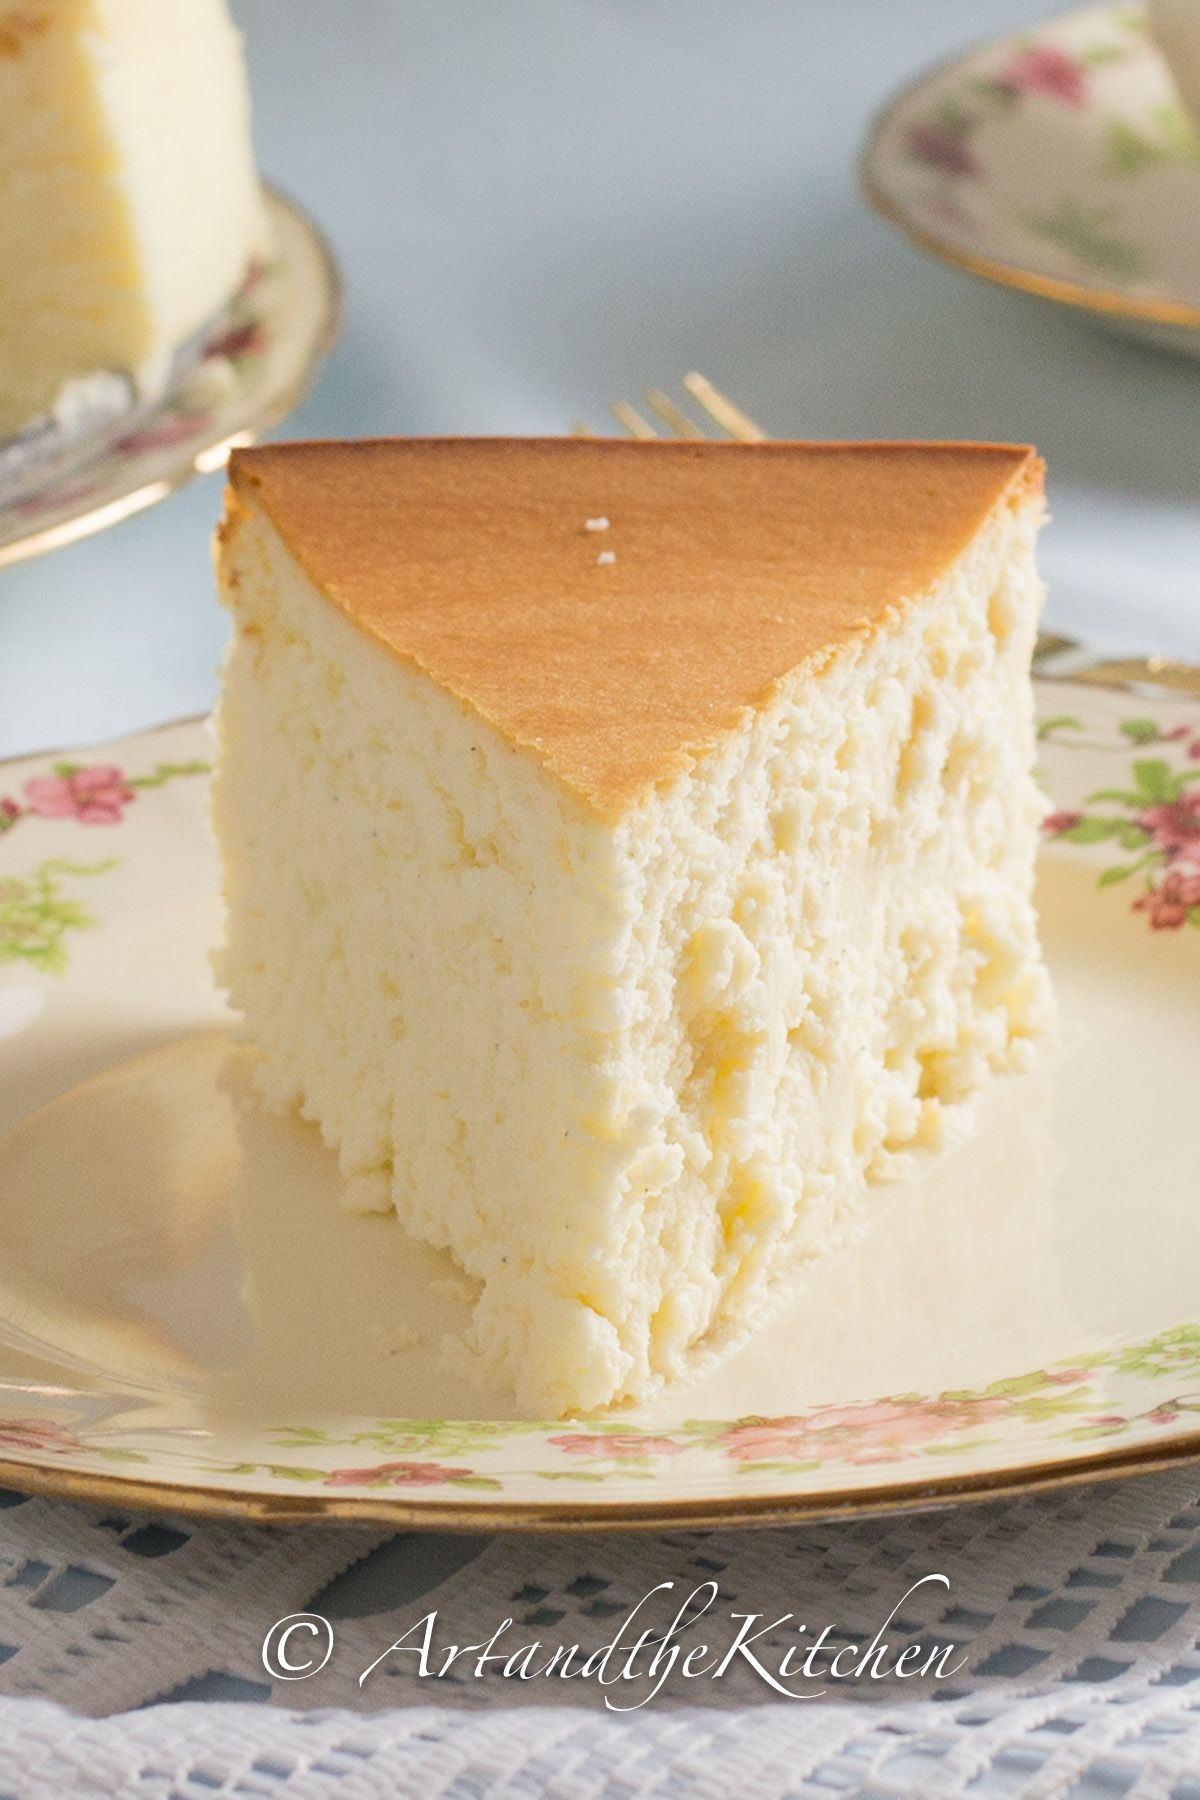 Tall And Creamy New York Cheesecake Cheesecake Recipes Desserts Dessert Recipes